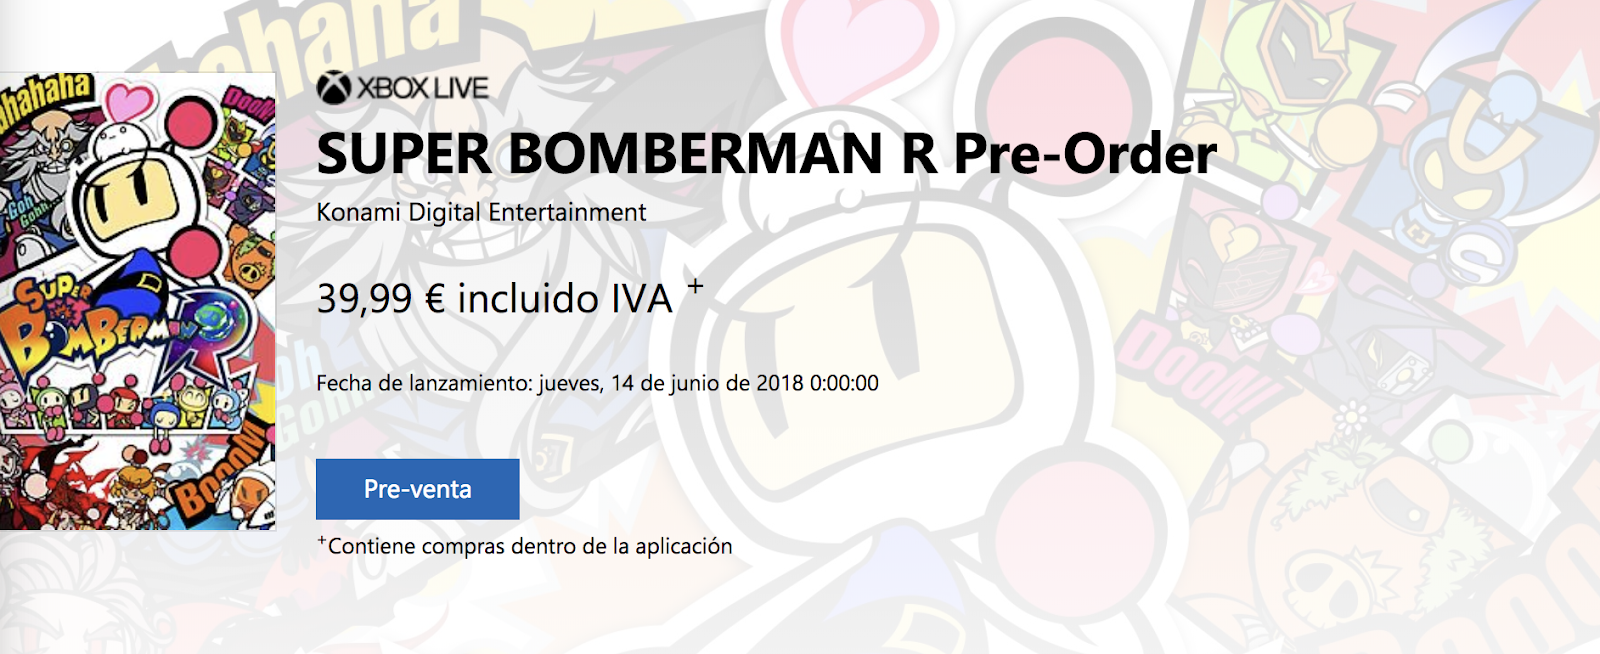 Se confirma Super Bomberman R para Xbox One, PlayStation y ordenadores, el 14 de junio